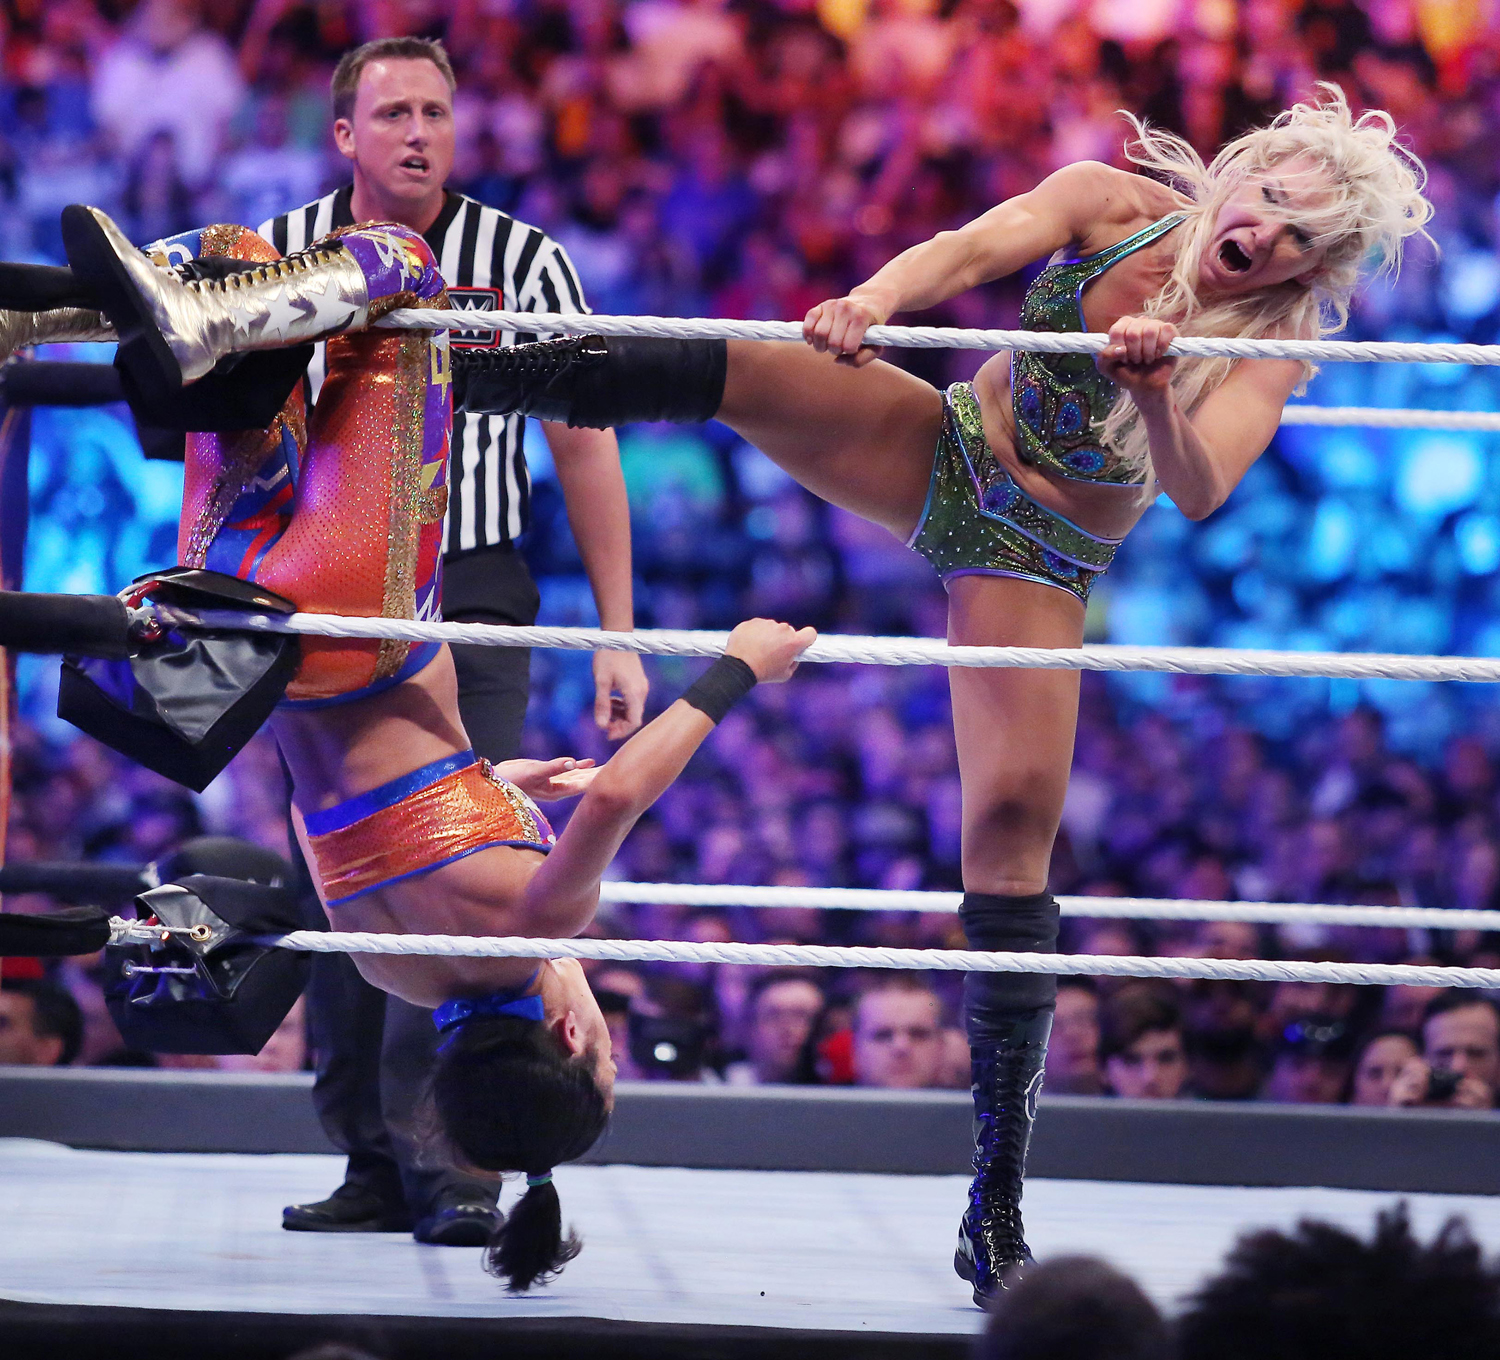 Charlotte Flair (right) kicks Bayley during WrestleMania 33 on April 2, 2017, at Camping World Stadium in Orlando, Florida.